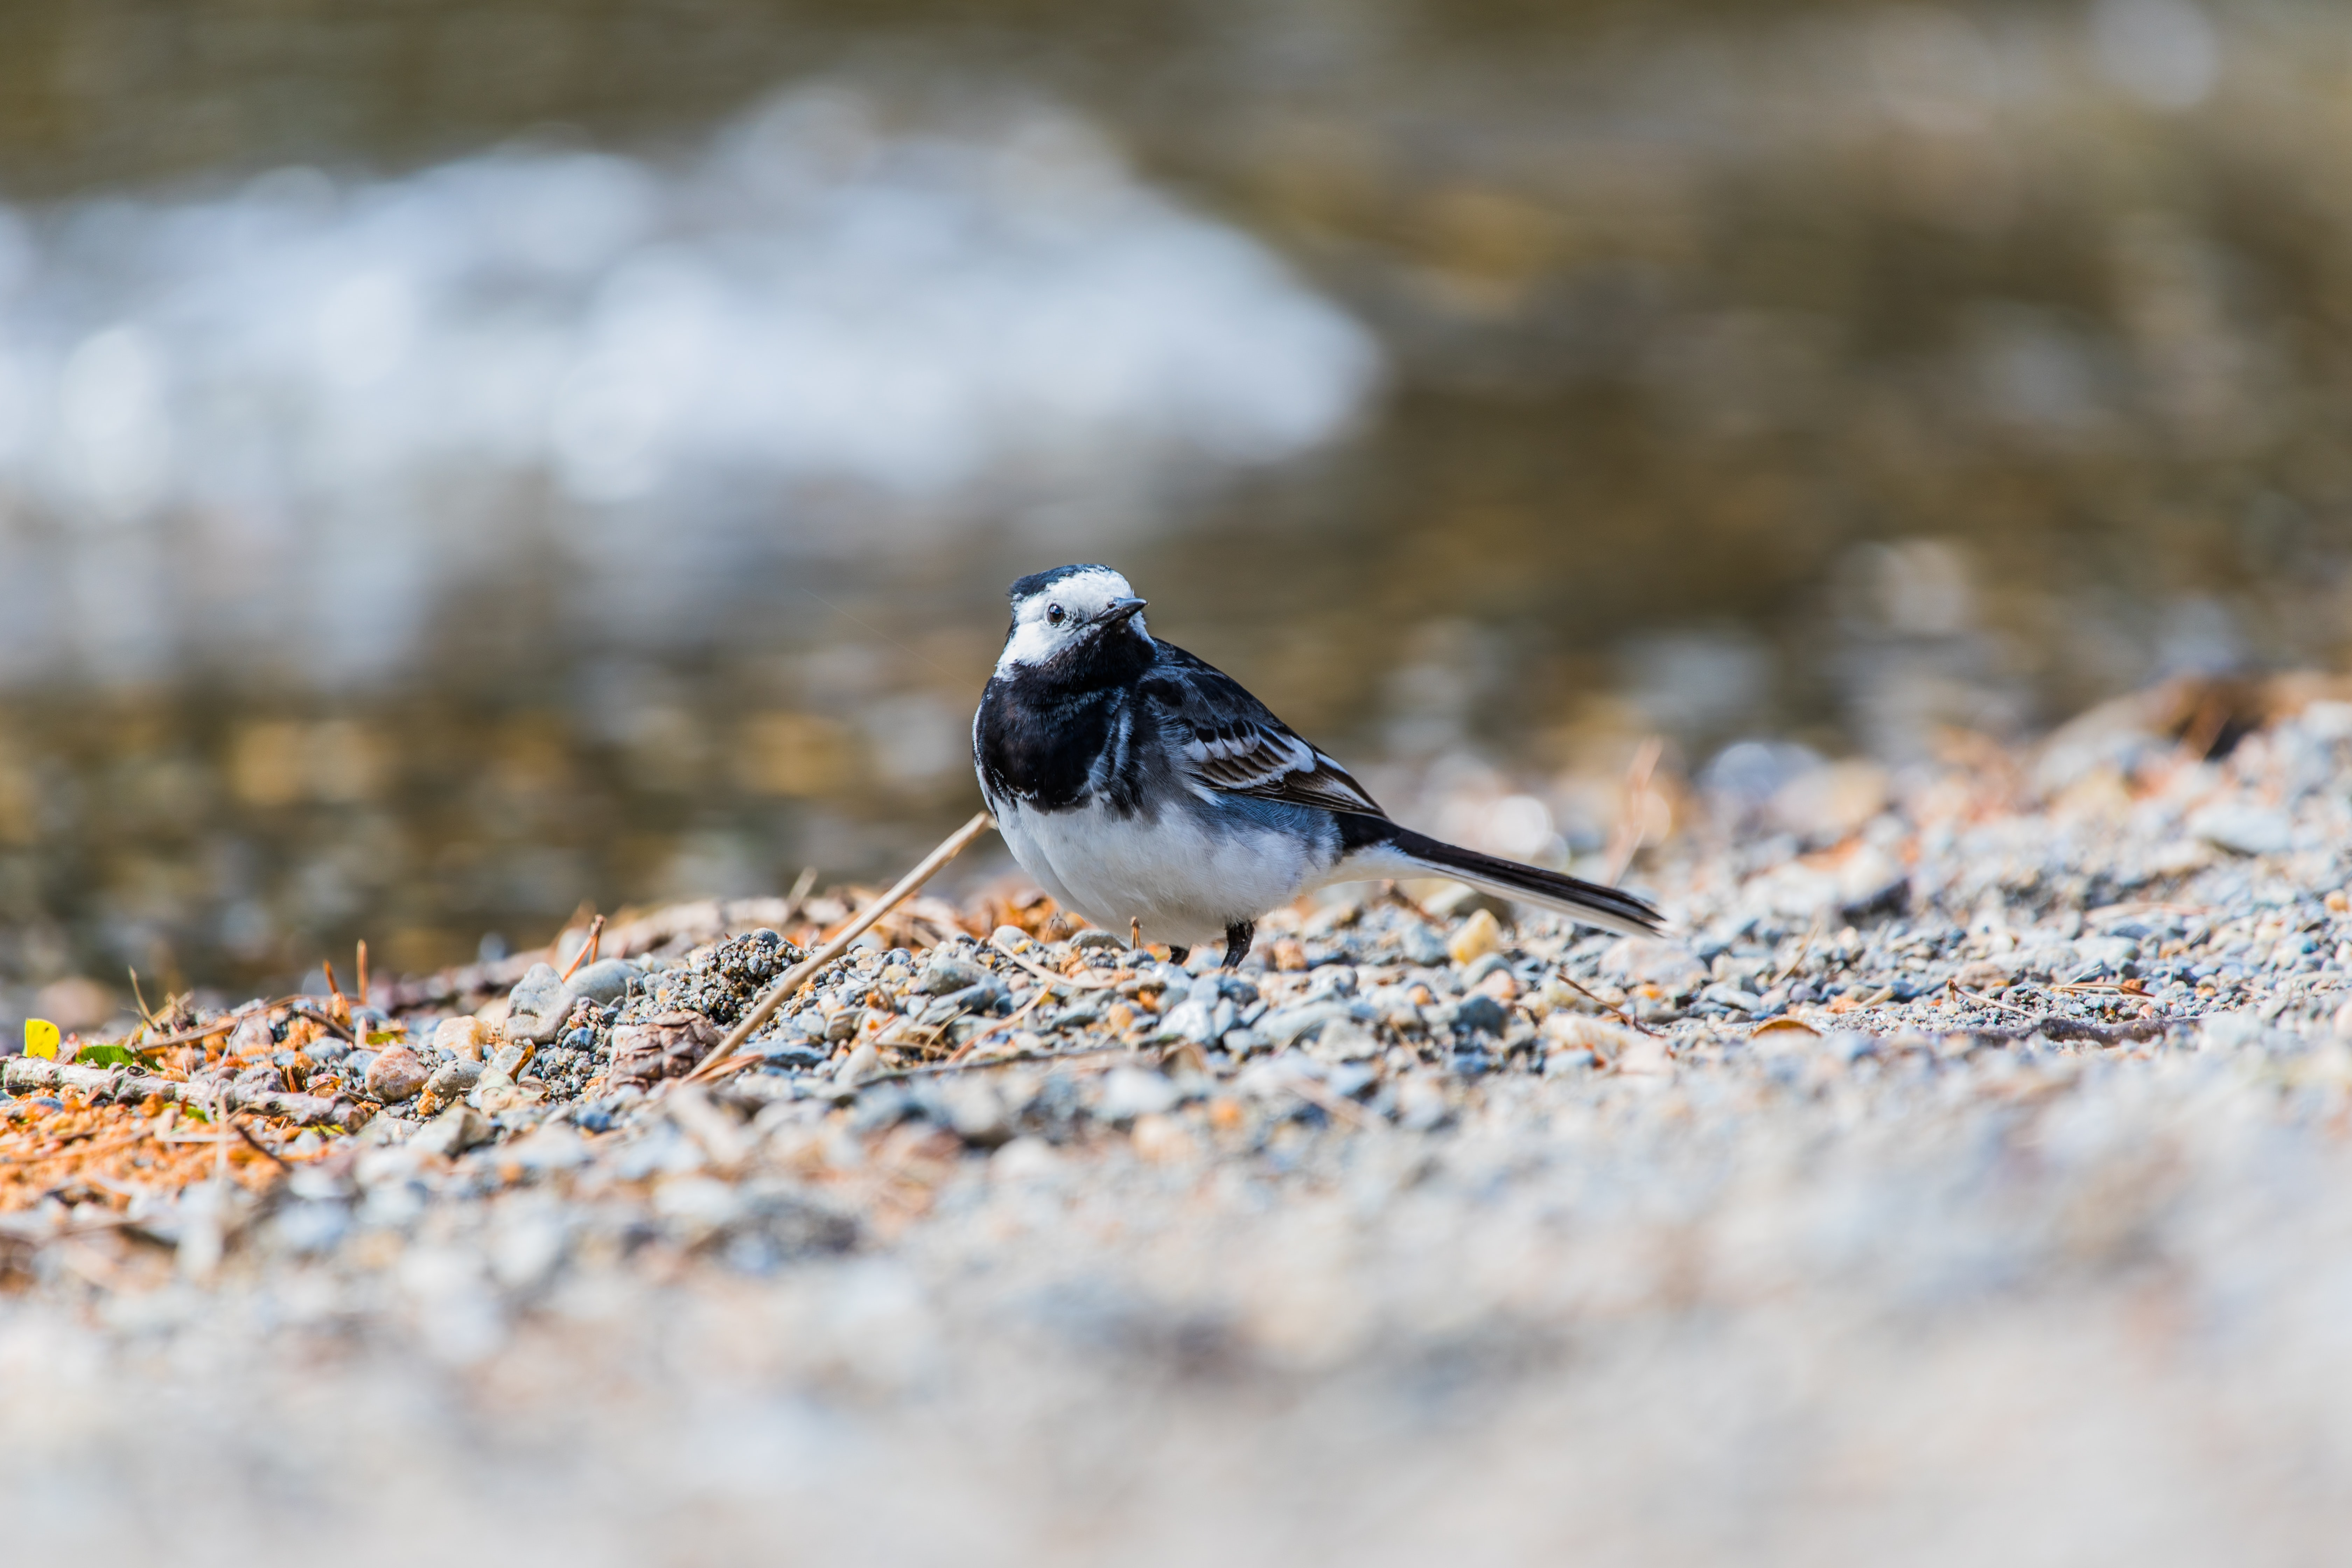 selective focus photography of black and white bird standing on stone covered surface